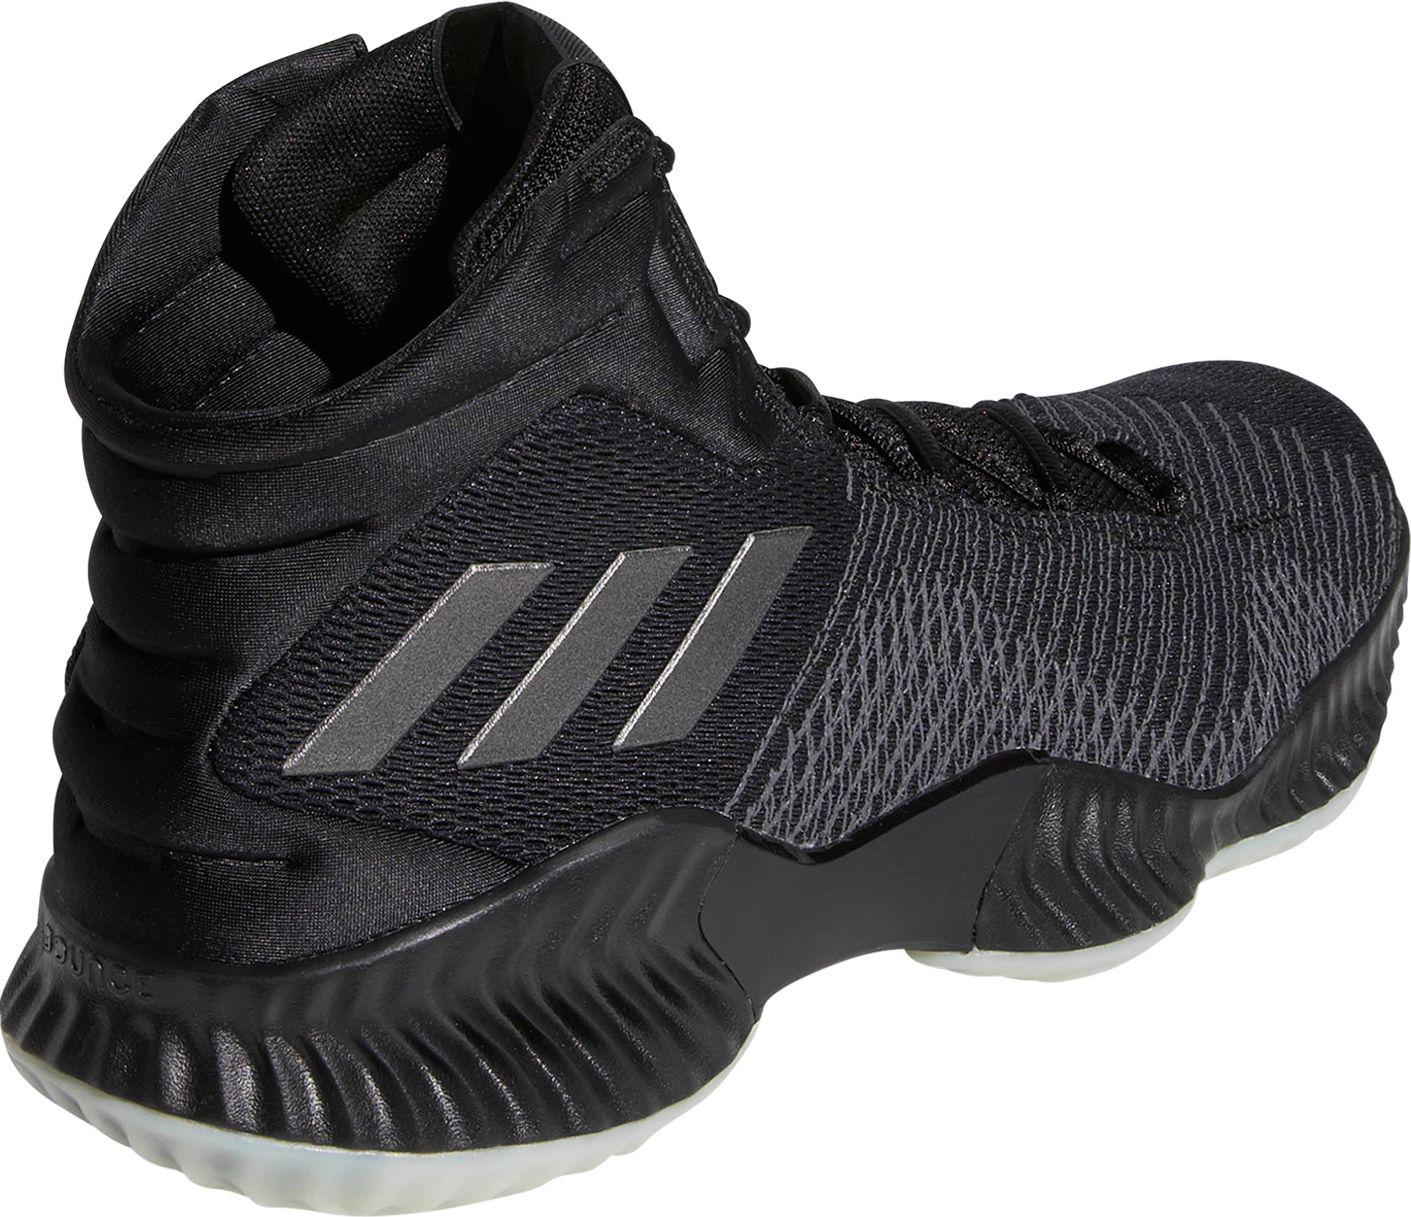 4d521587a8f adidas Pro Bounce 2018 Basketball Shoes in Black for Men - Lyst